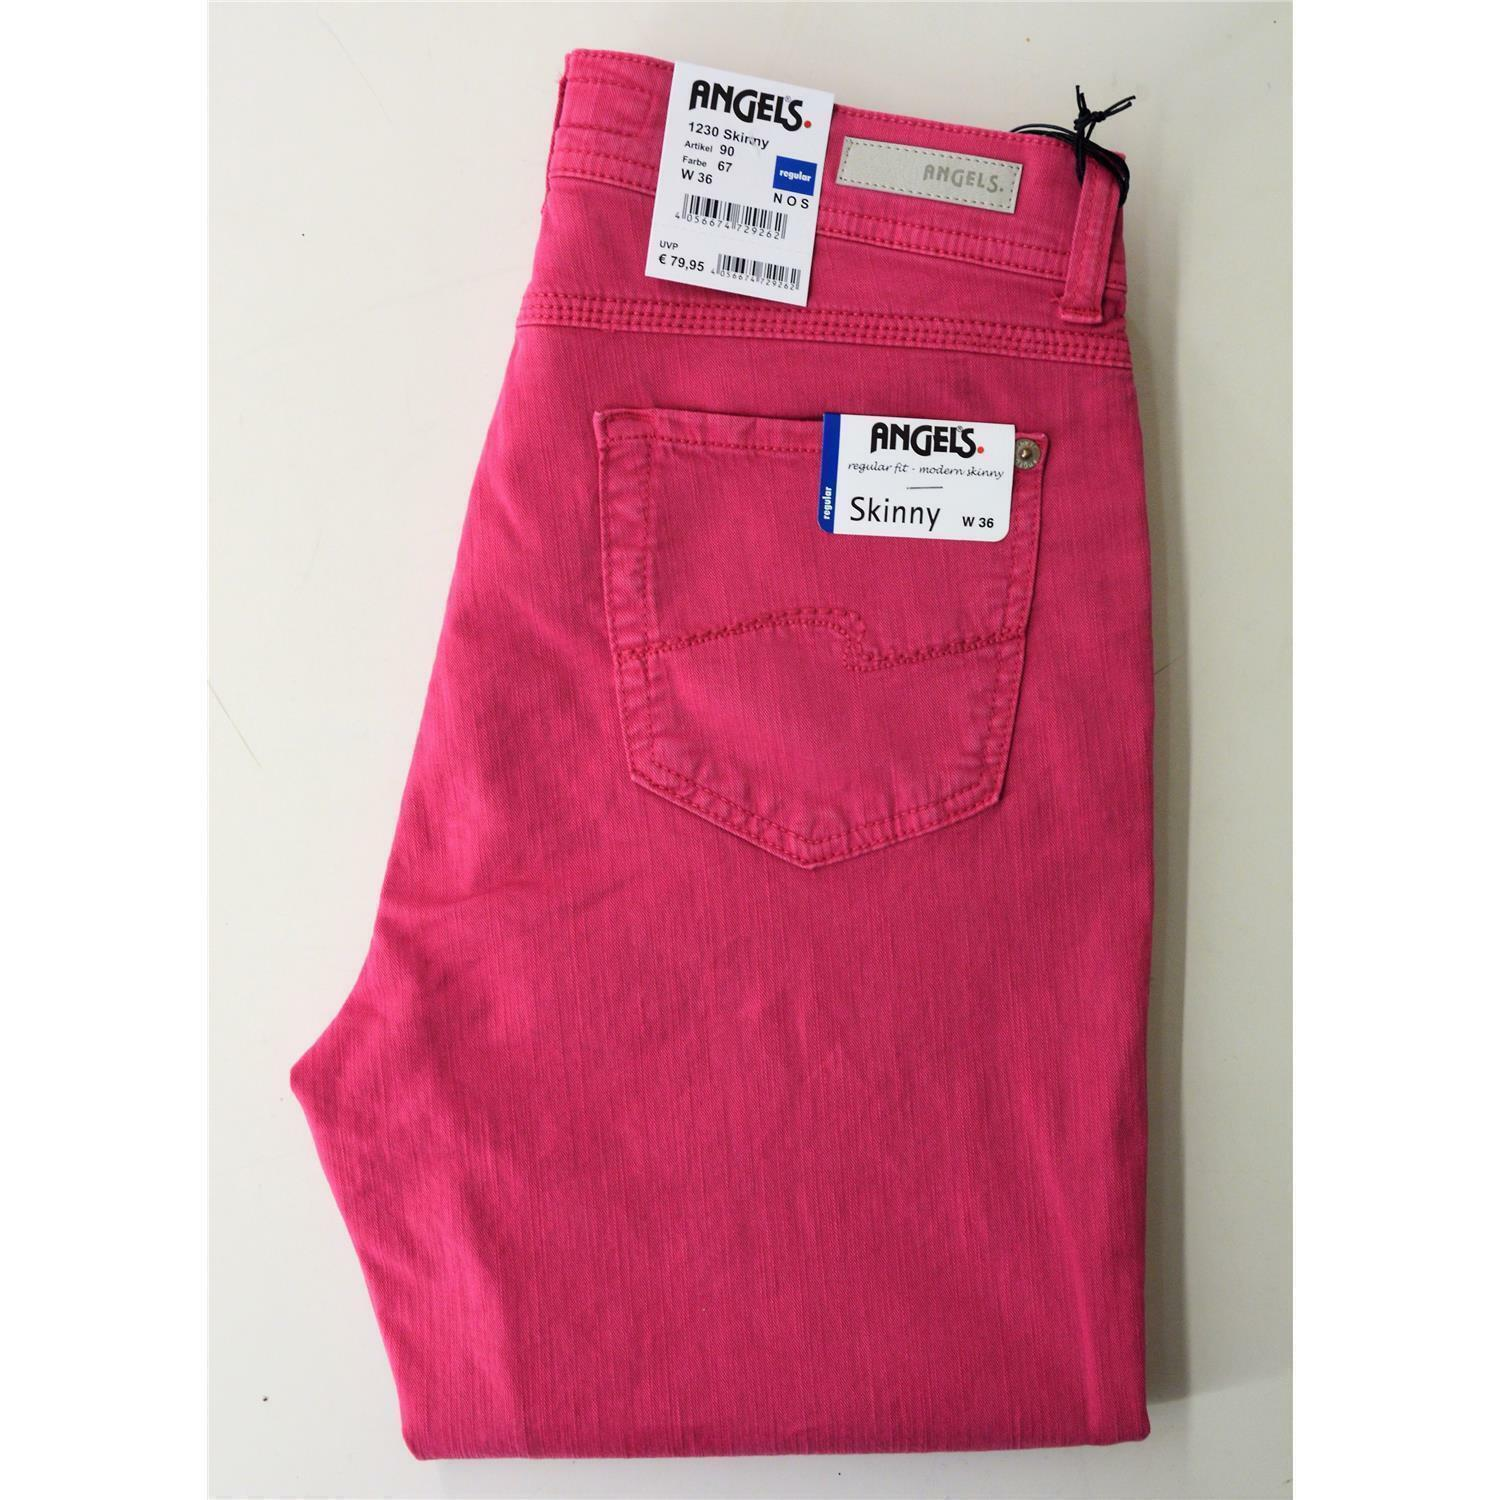 Angels Skinny alla moda donna Jeans Slim Fit Fit Fit in rosa, power stretch 28c446